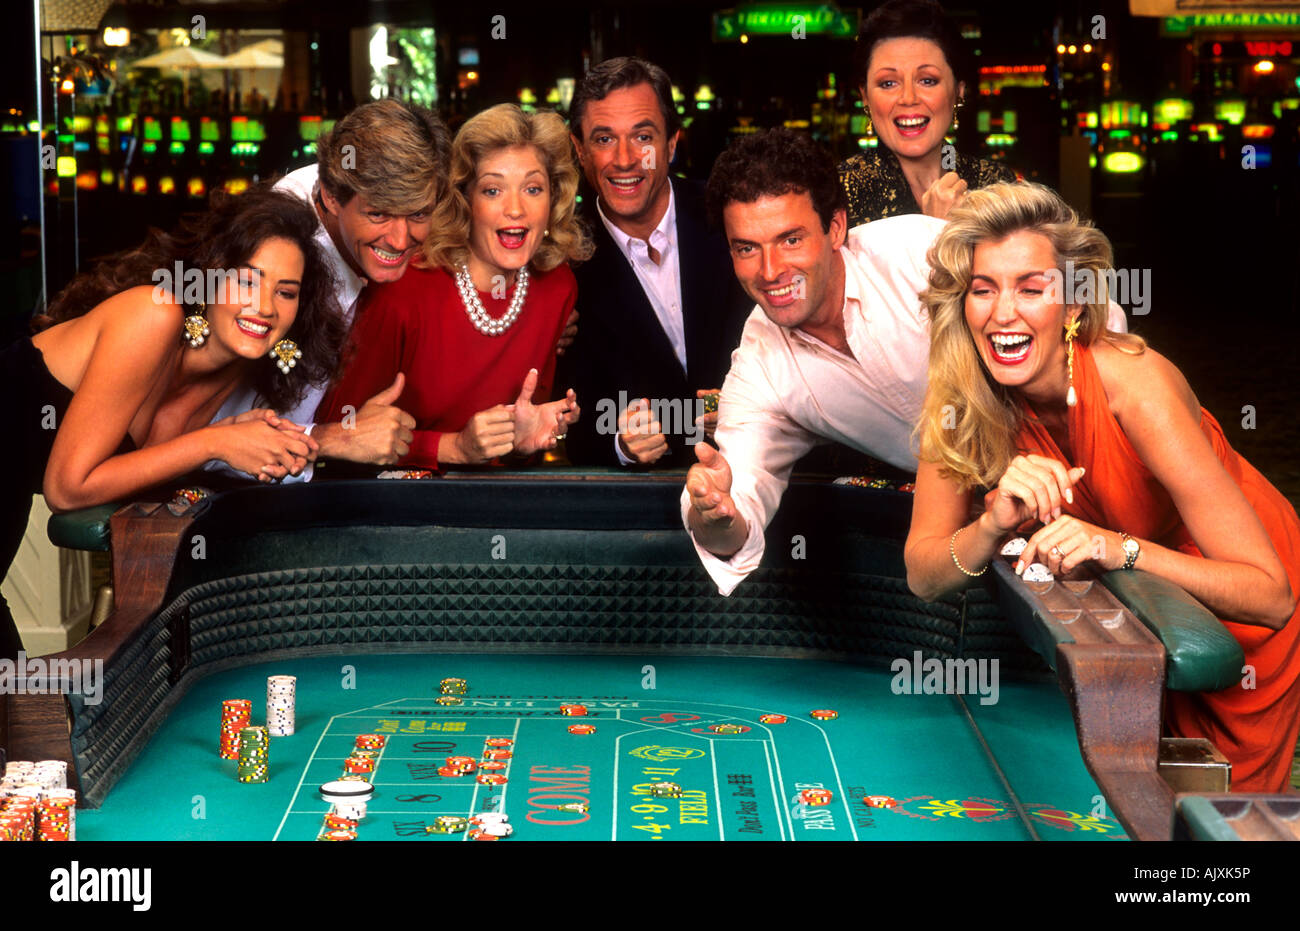 Great excitement in gambling at crap table with chips in lush gambling  casino laughing and having fun Stock Photo - Alamy